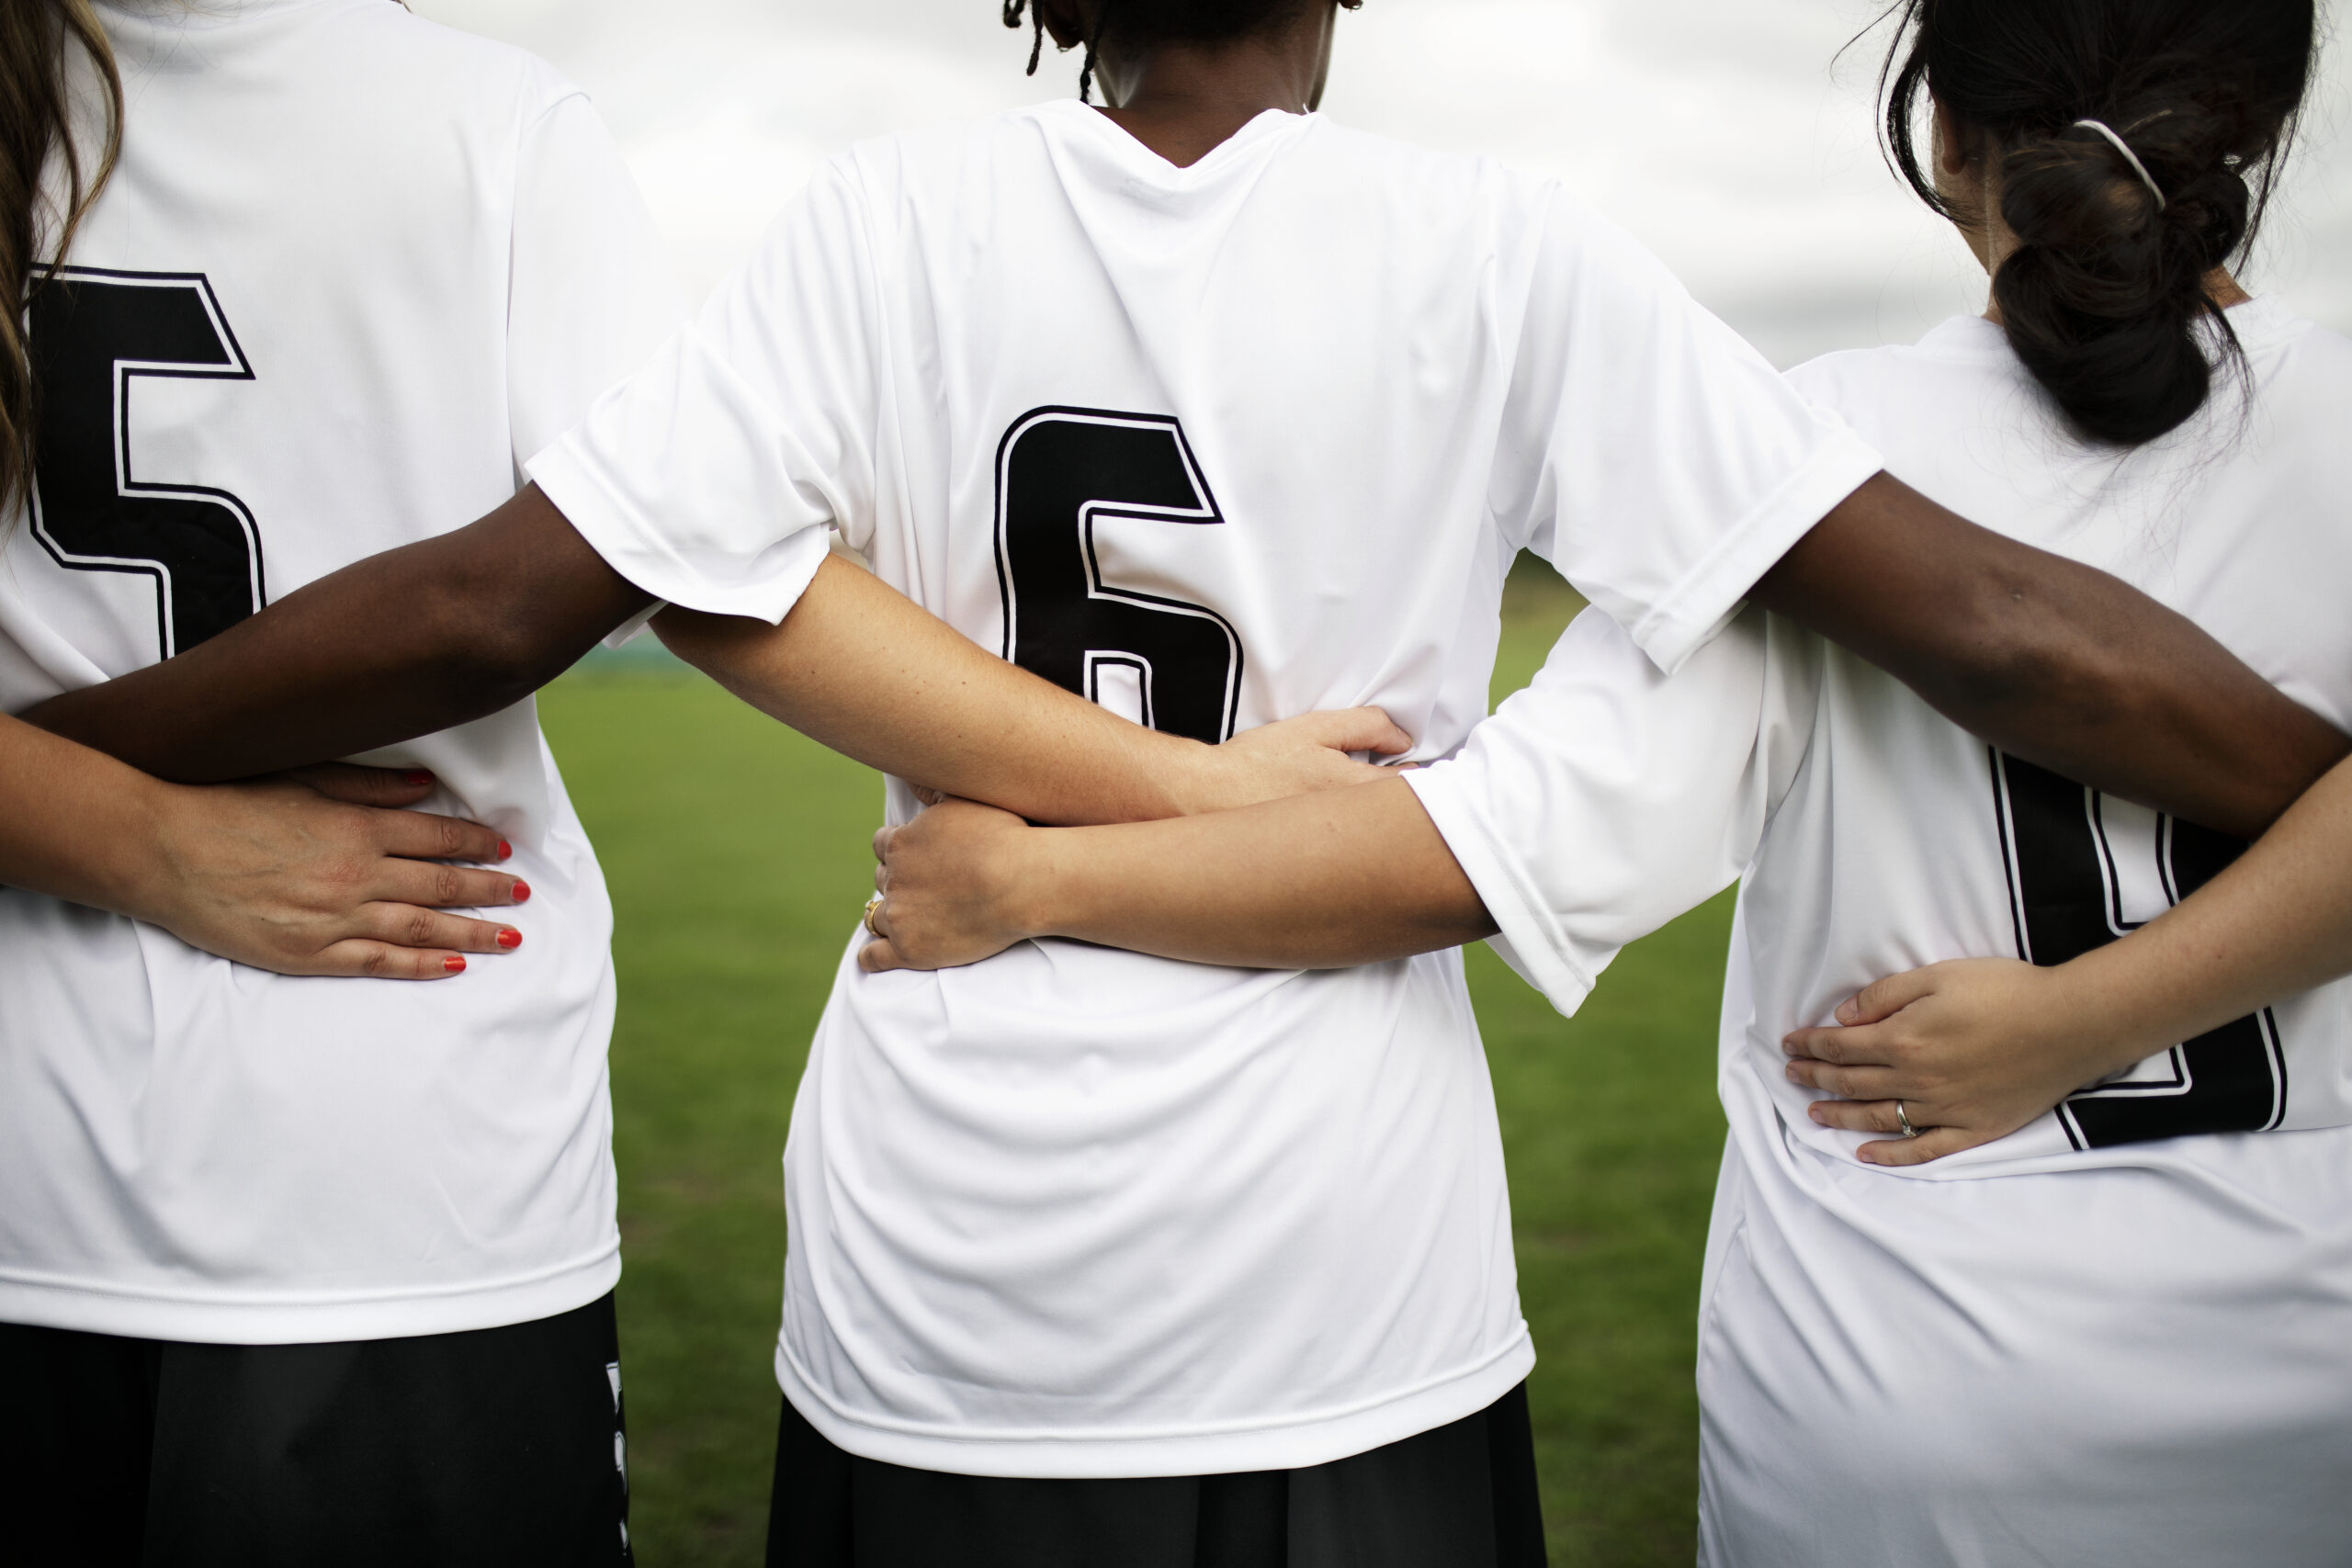 female-soccer-players-huddling-and-standing-togeth-AEWQX4B